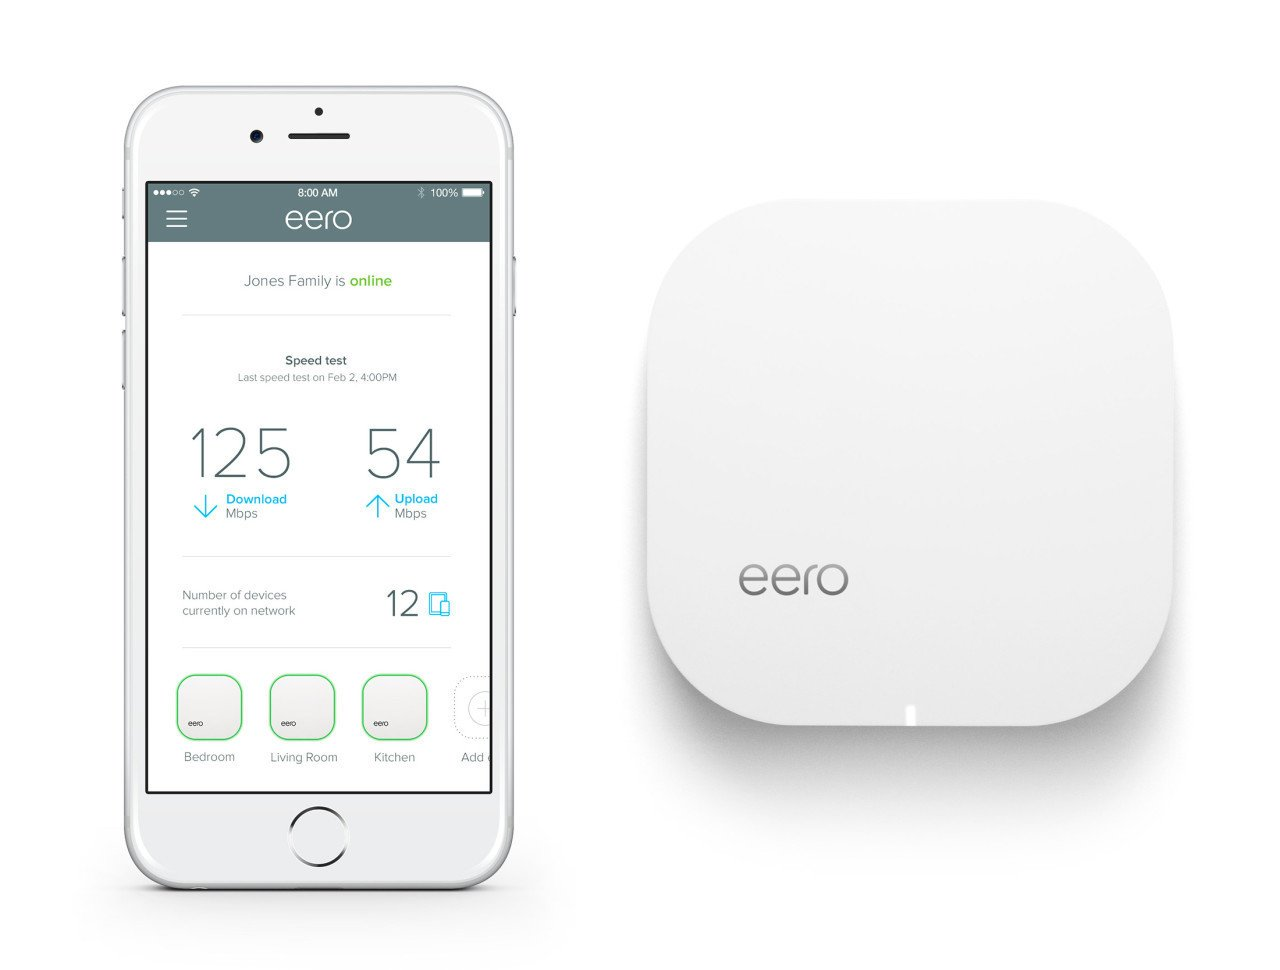 Photo 2 of 9 in 8 Smart Home Devices That Will Make Life Easier